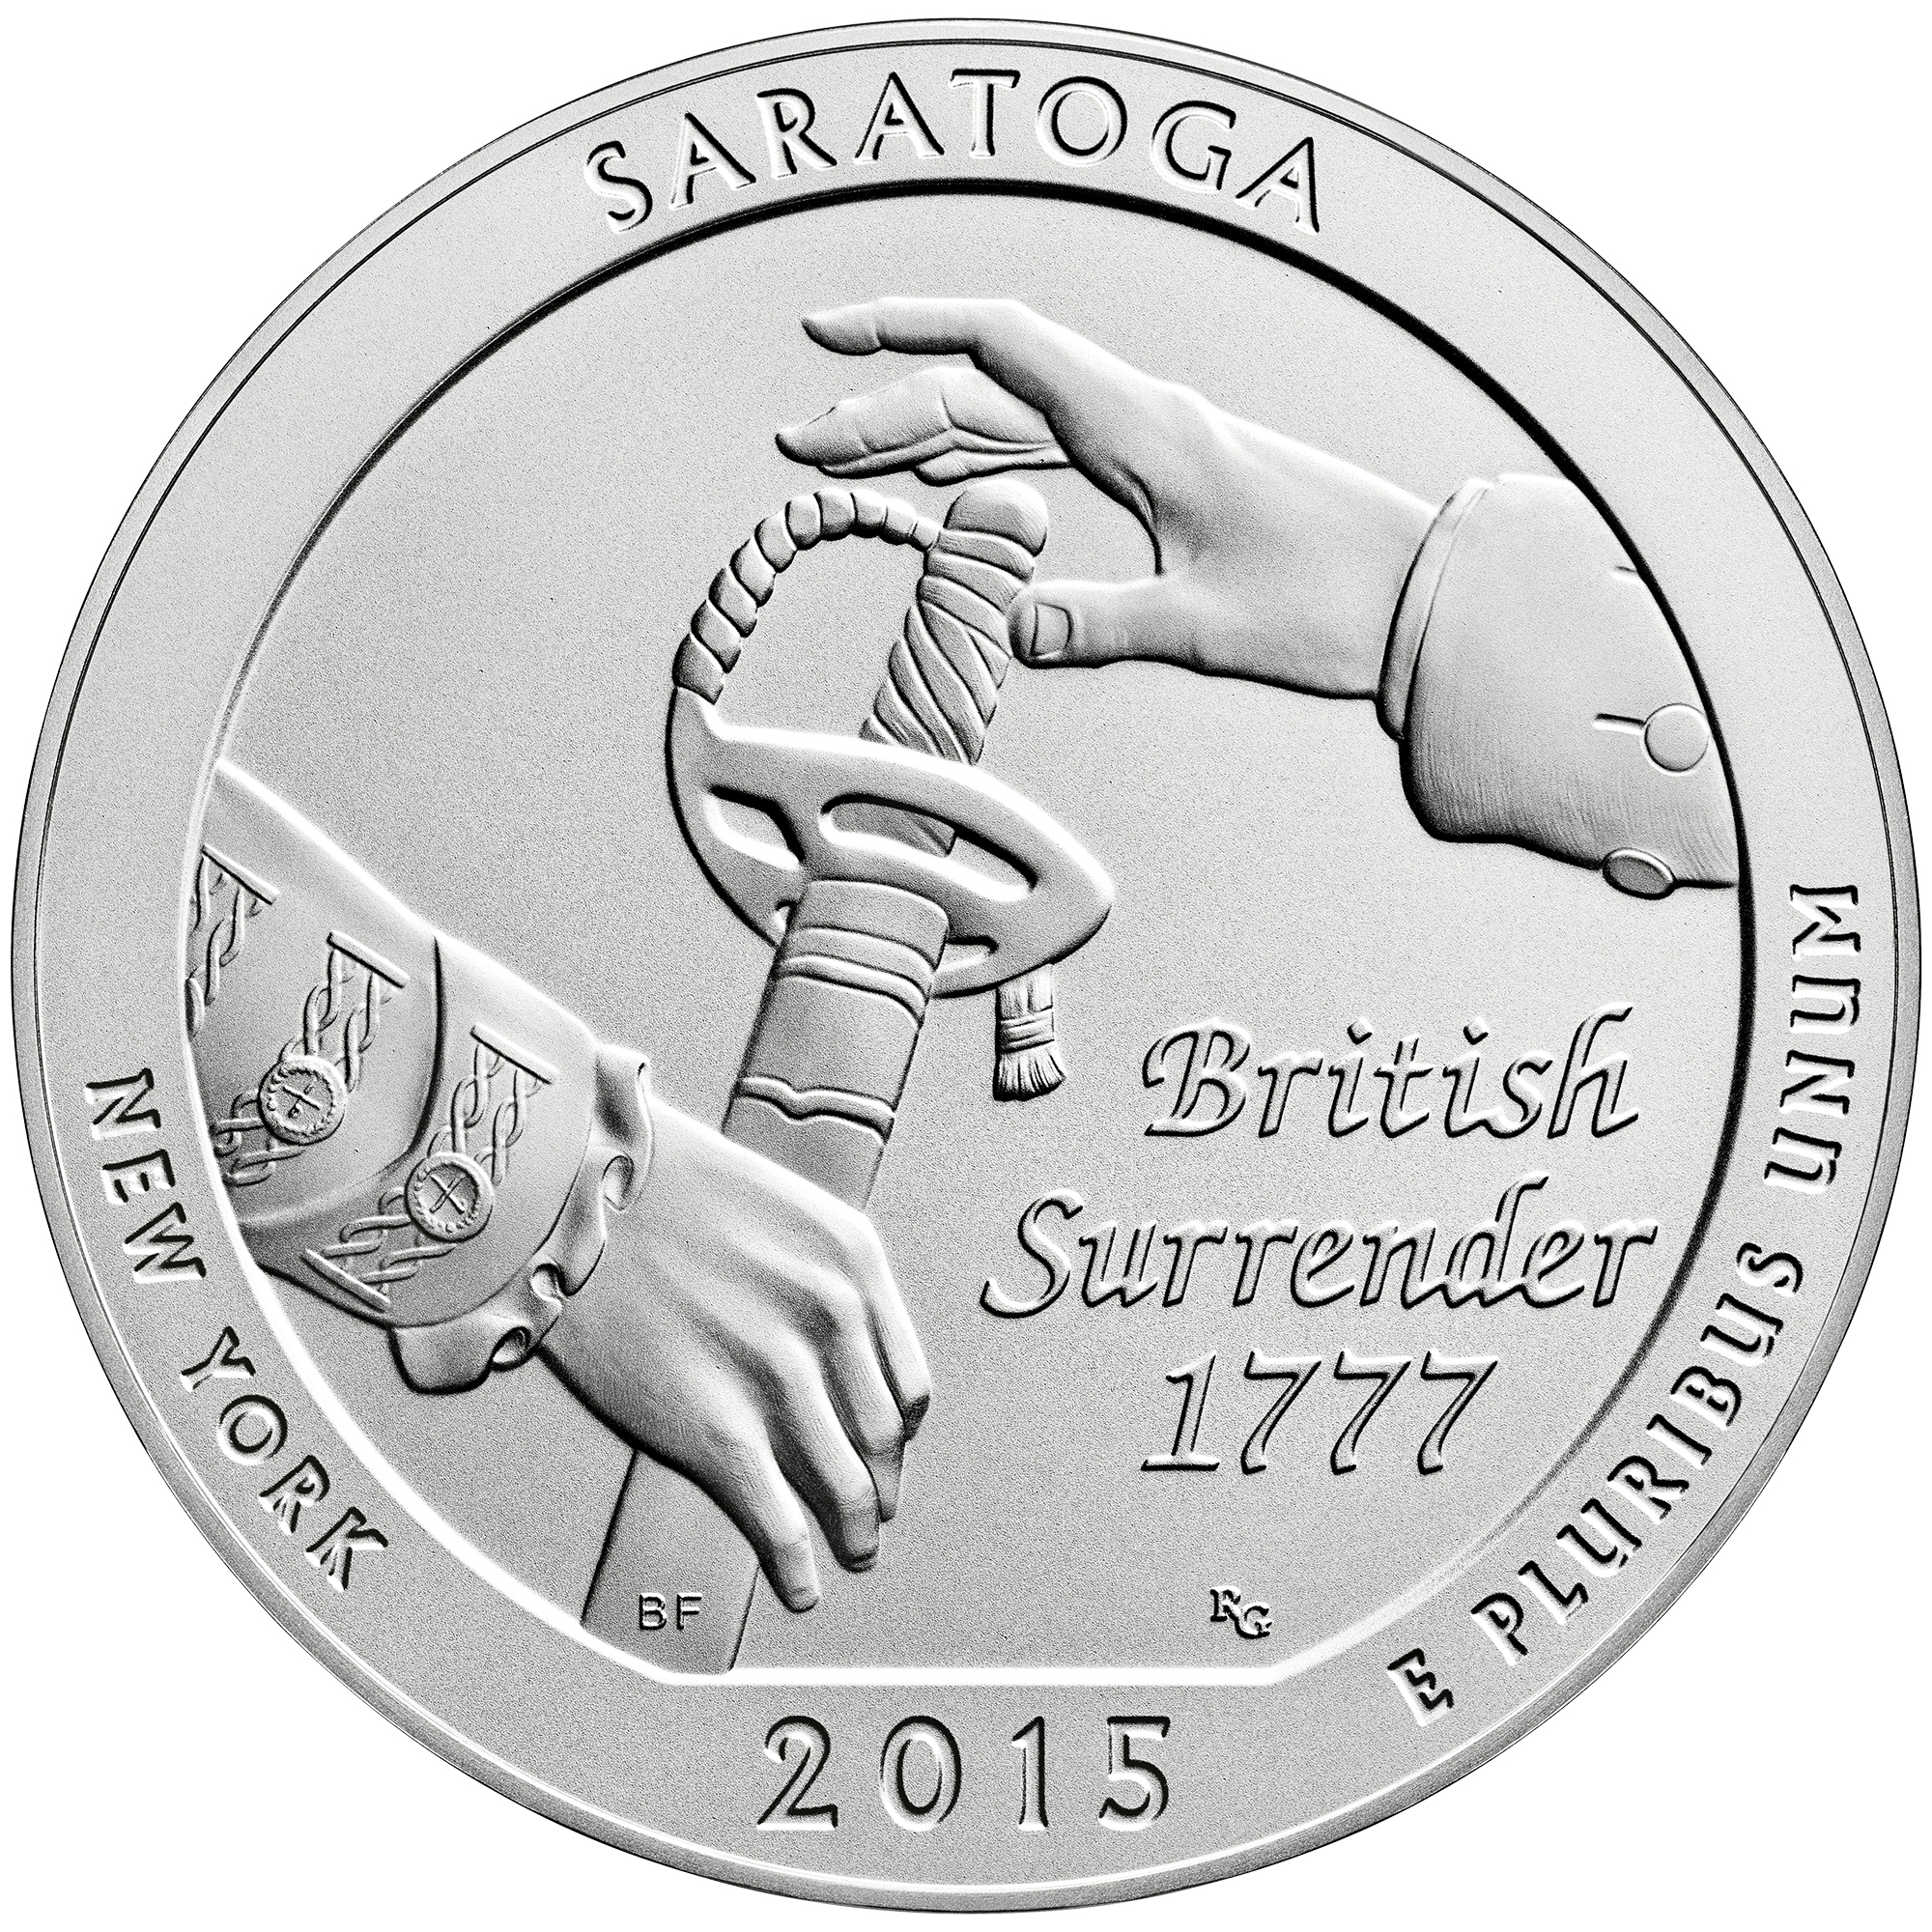 2015 America The Beautiful Quarters Five Ounce Silver Uncirculated Coin Saratoga New York Reverse